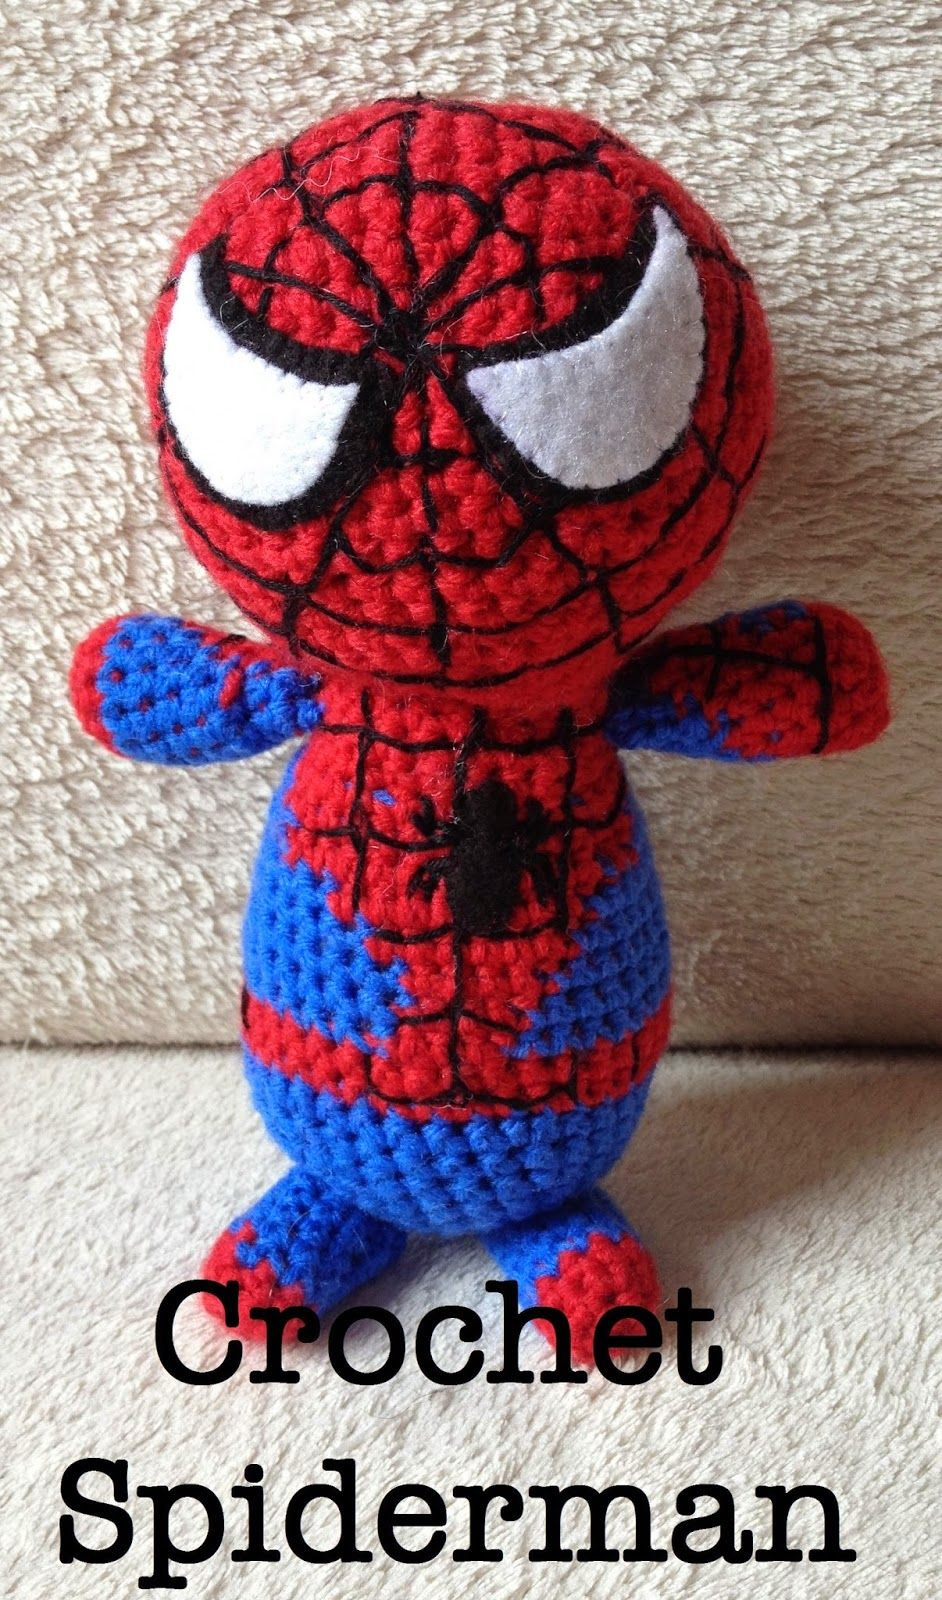 The Perfect Hiding Place: Crochet Spiderman - FREE pattern | Crochet ...